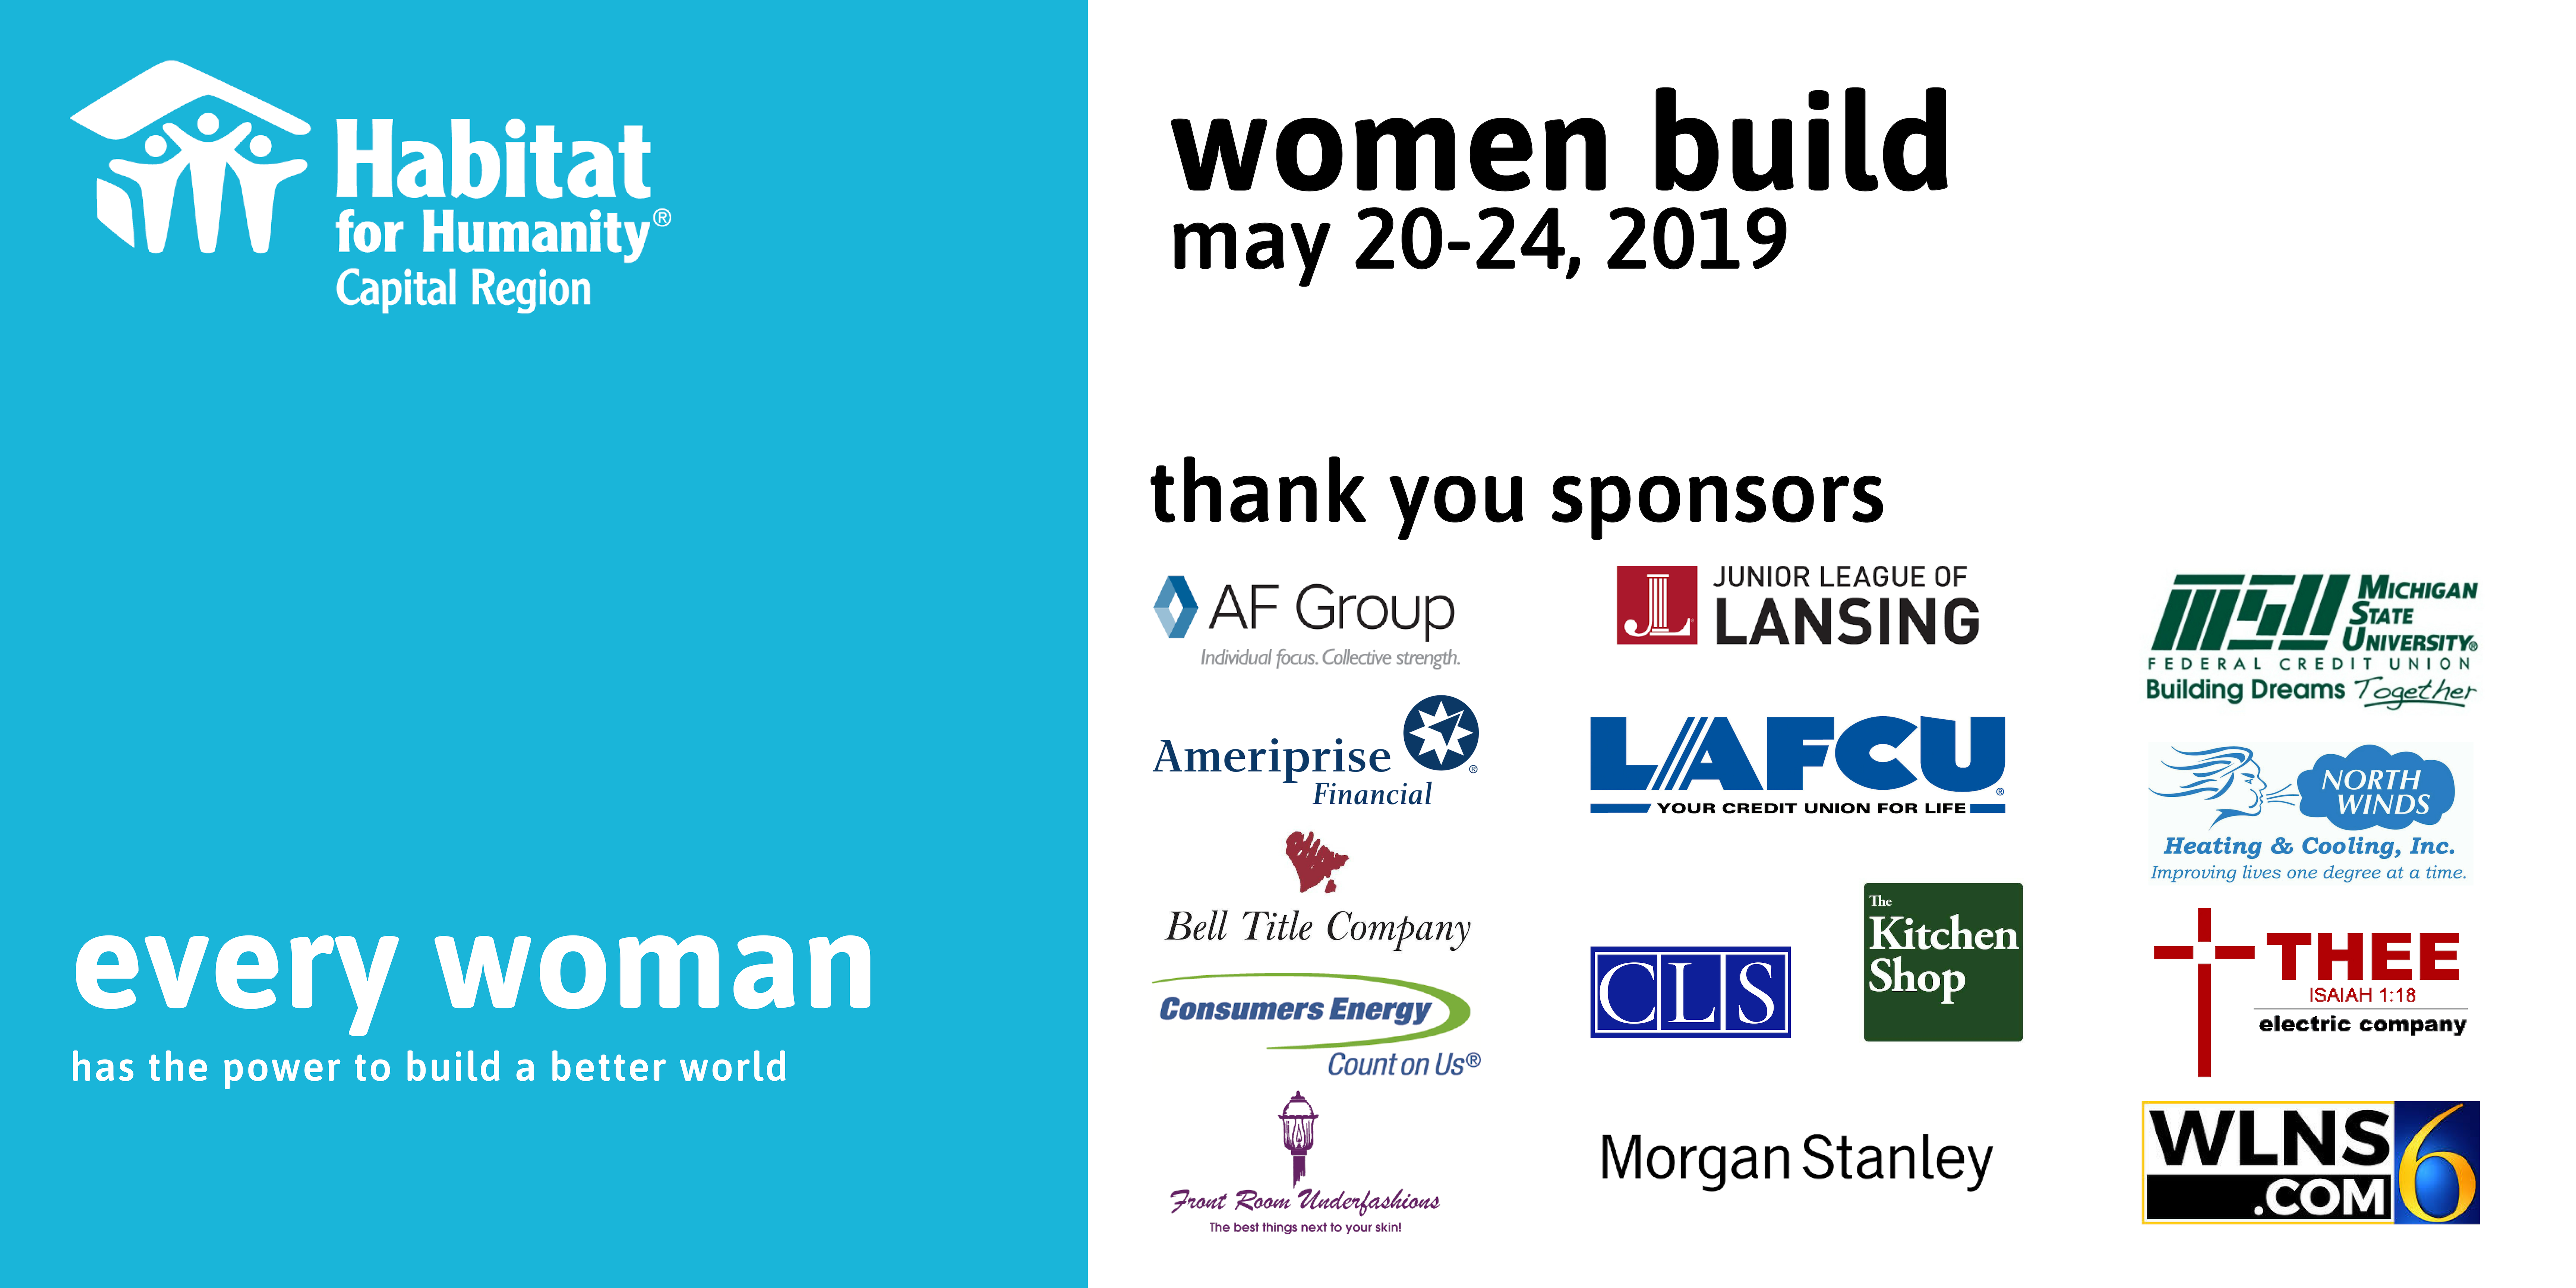 women build 2019 sponsor banner 6'x3'.png